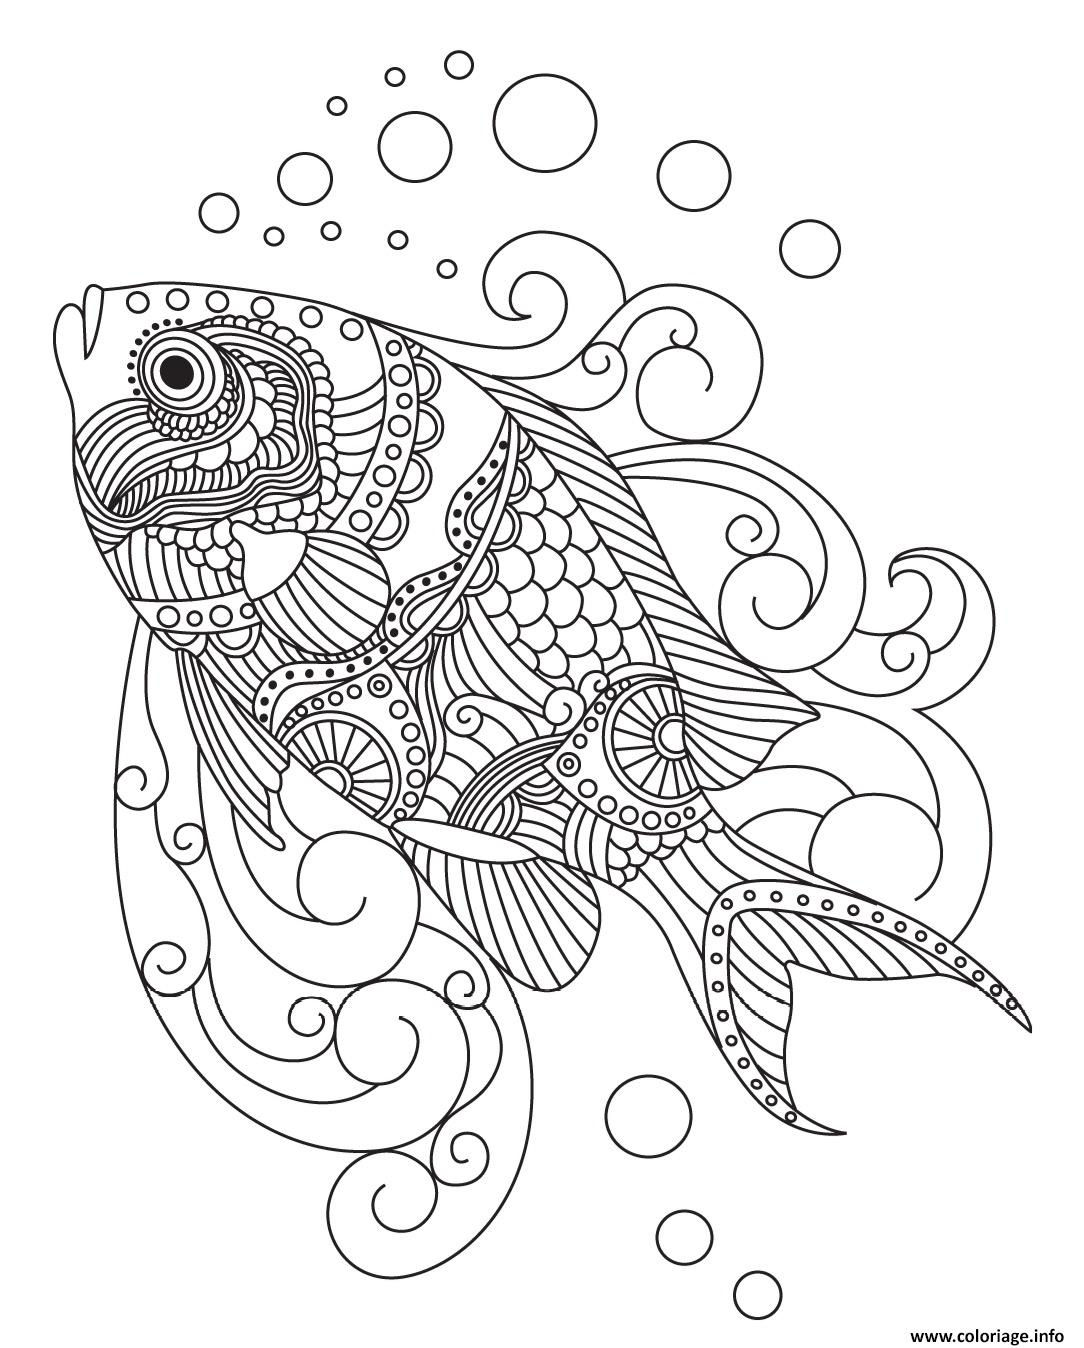 Coloriage Mandala De Poisson.Coloriage Poisson Mandala Adulte Dessin